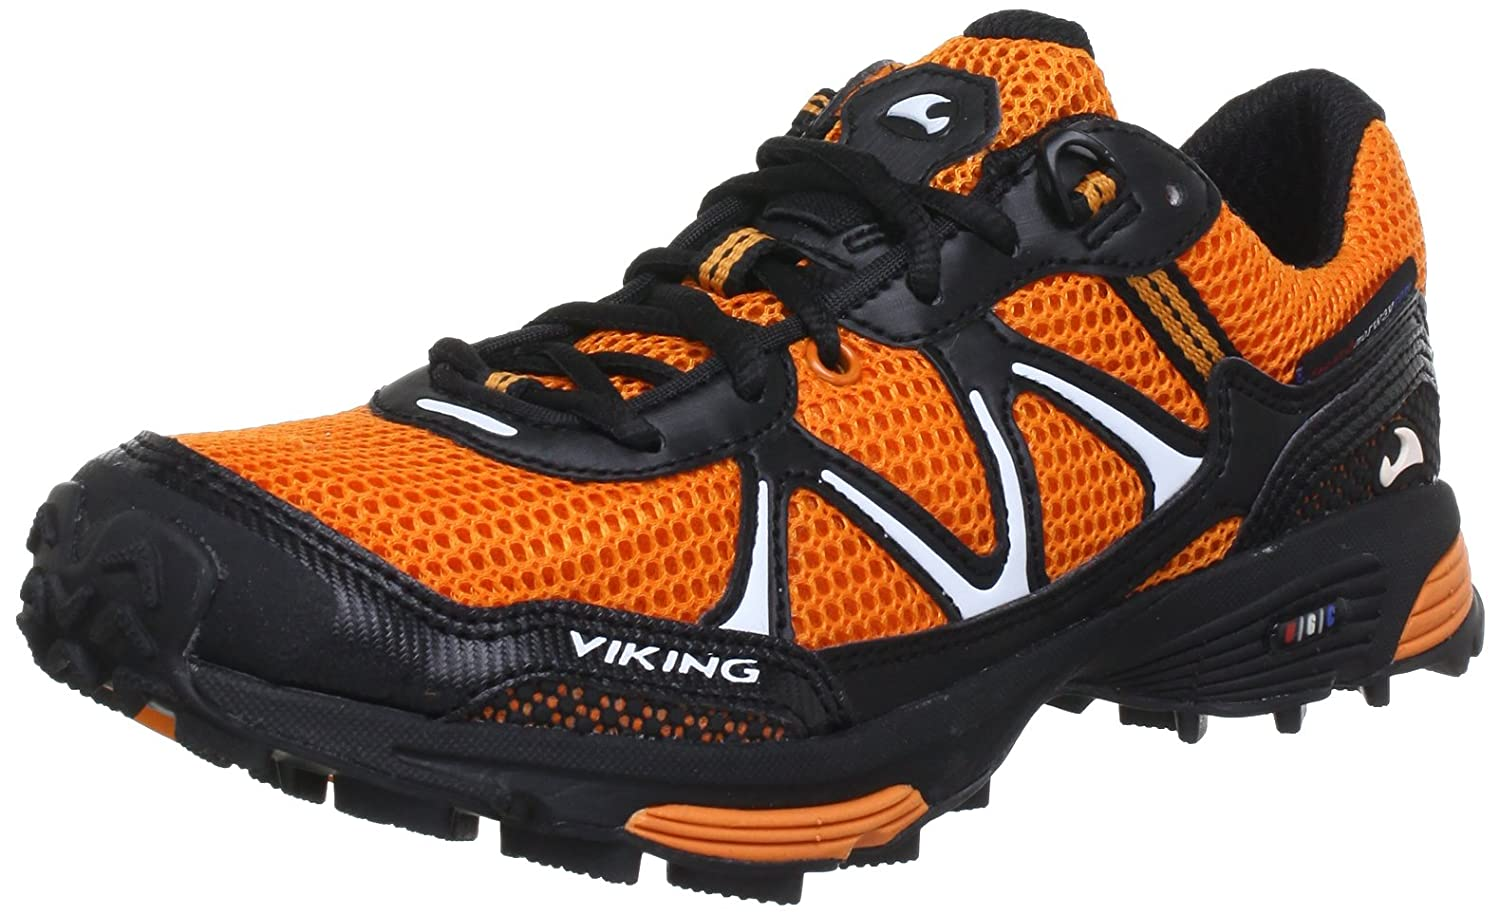 Viking Pinnacle W Damen Outdoor Fitnessschuhe